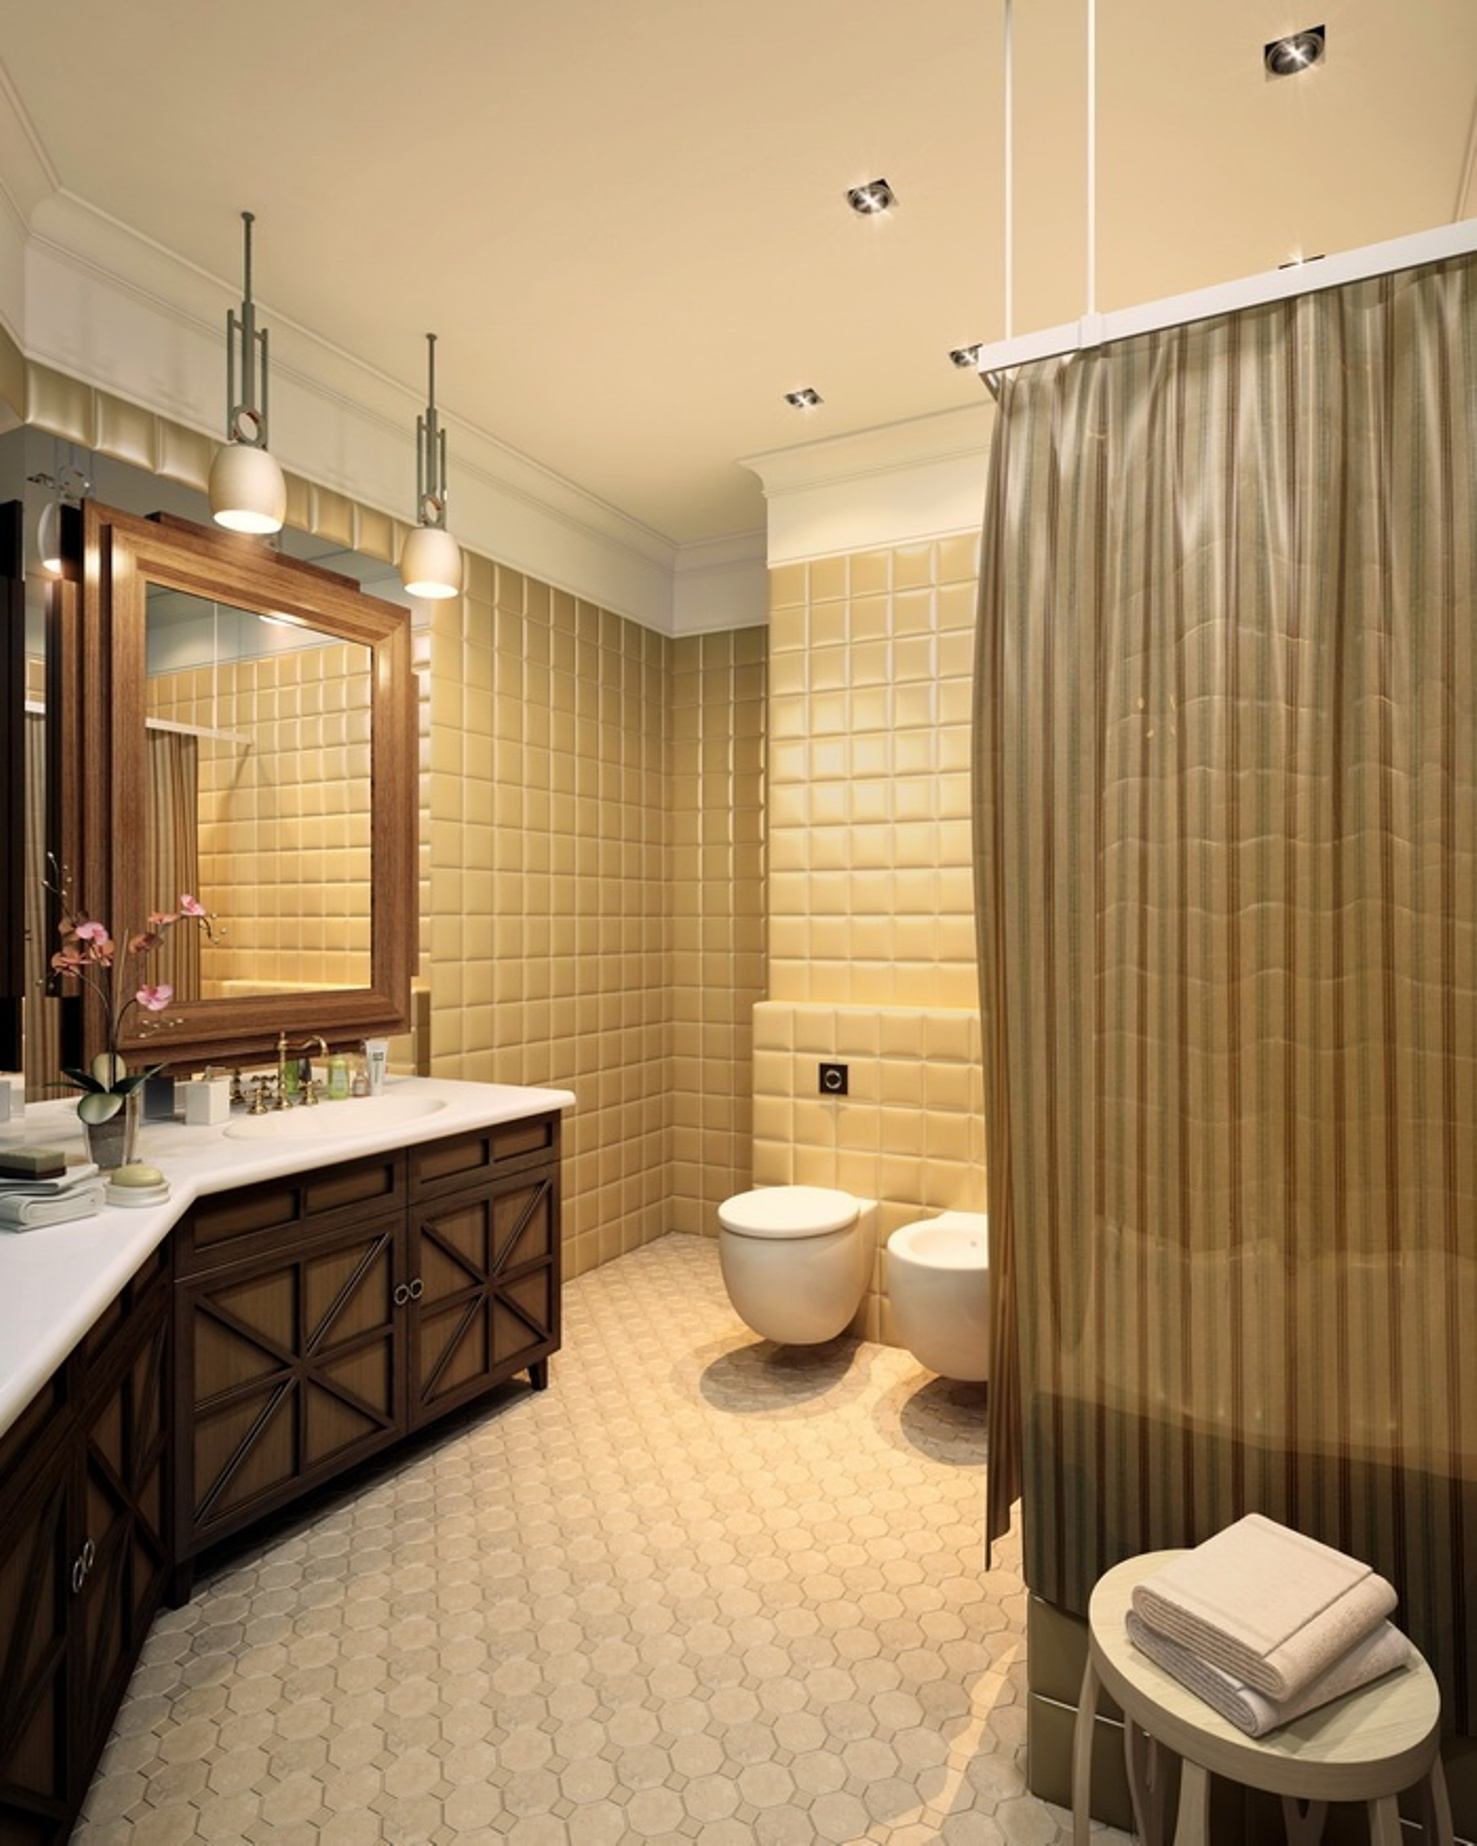 brown-art-deco-bathroom-with-floatin-toilet-and-bidet-and-tub-with-curtain-and-bathroom-vanity